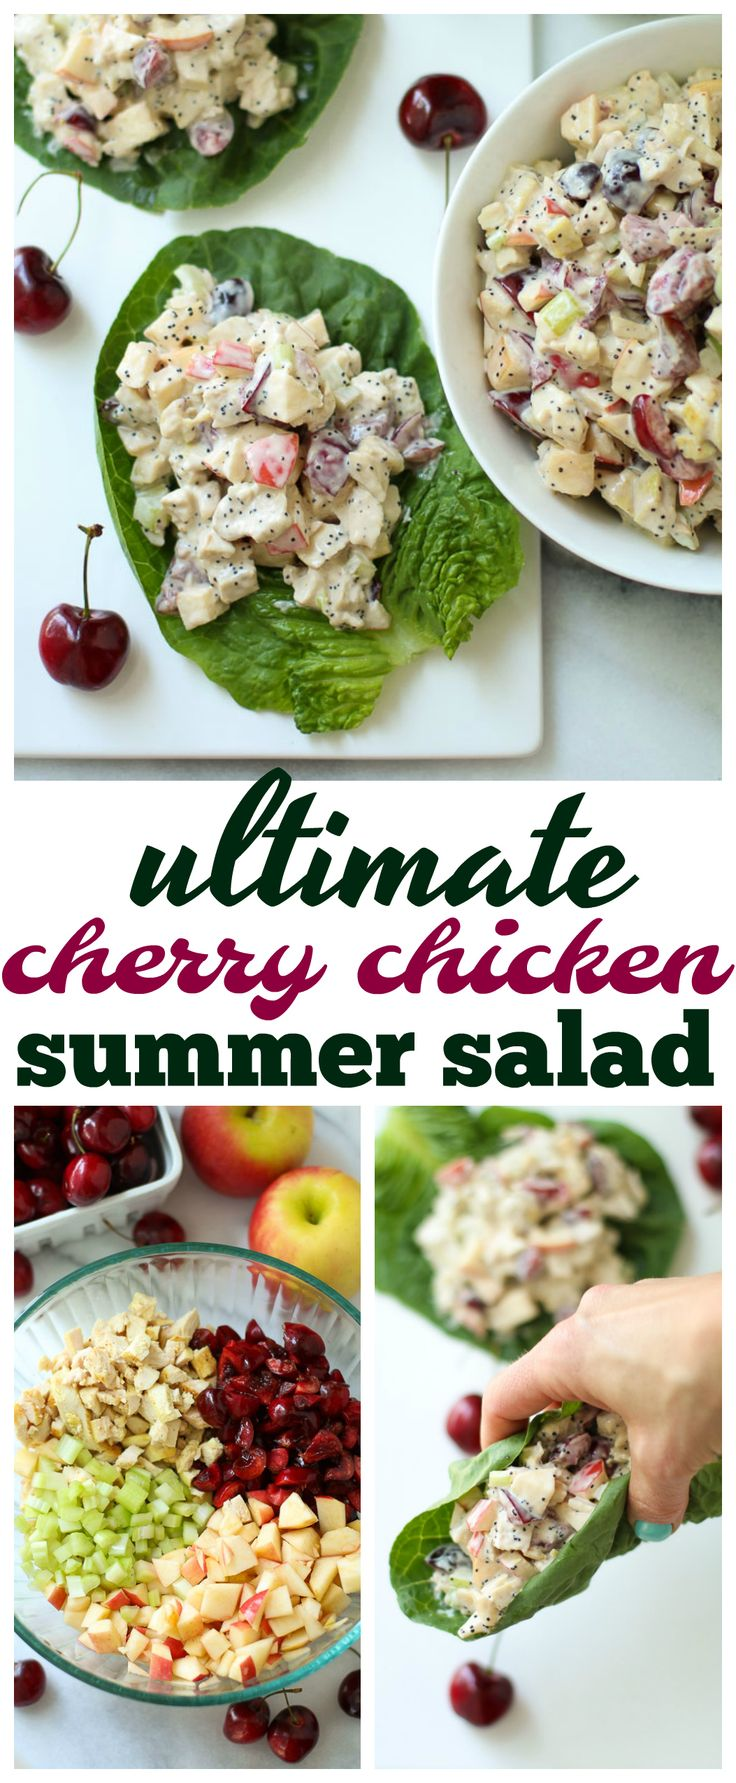 A new twist on classic chicken salad, this Ultimate Cherry Chicken Summer Salad is a light, fresh, delicious meal that is so easy to throw together!  via @kimscravings